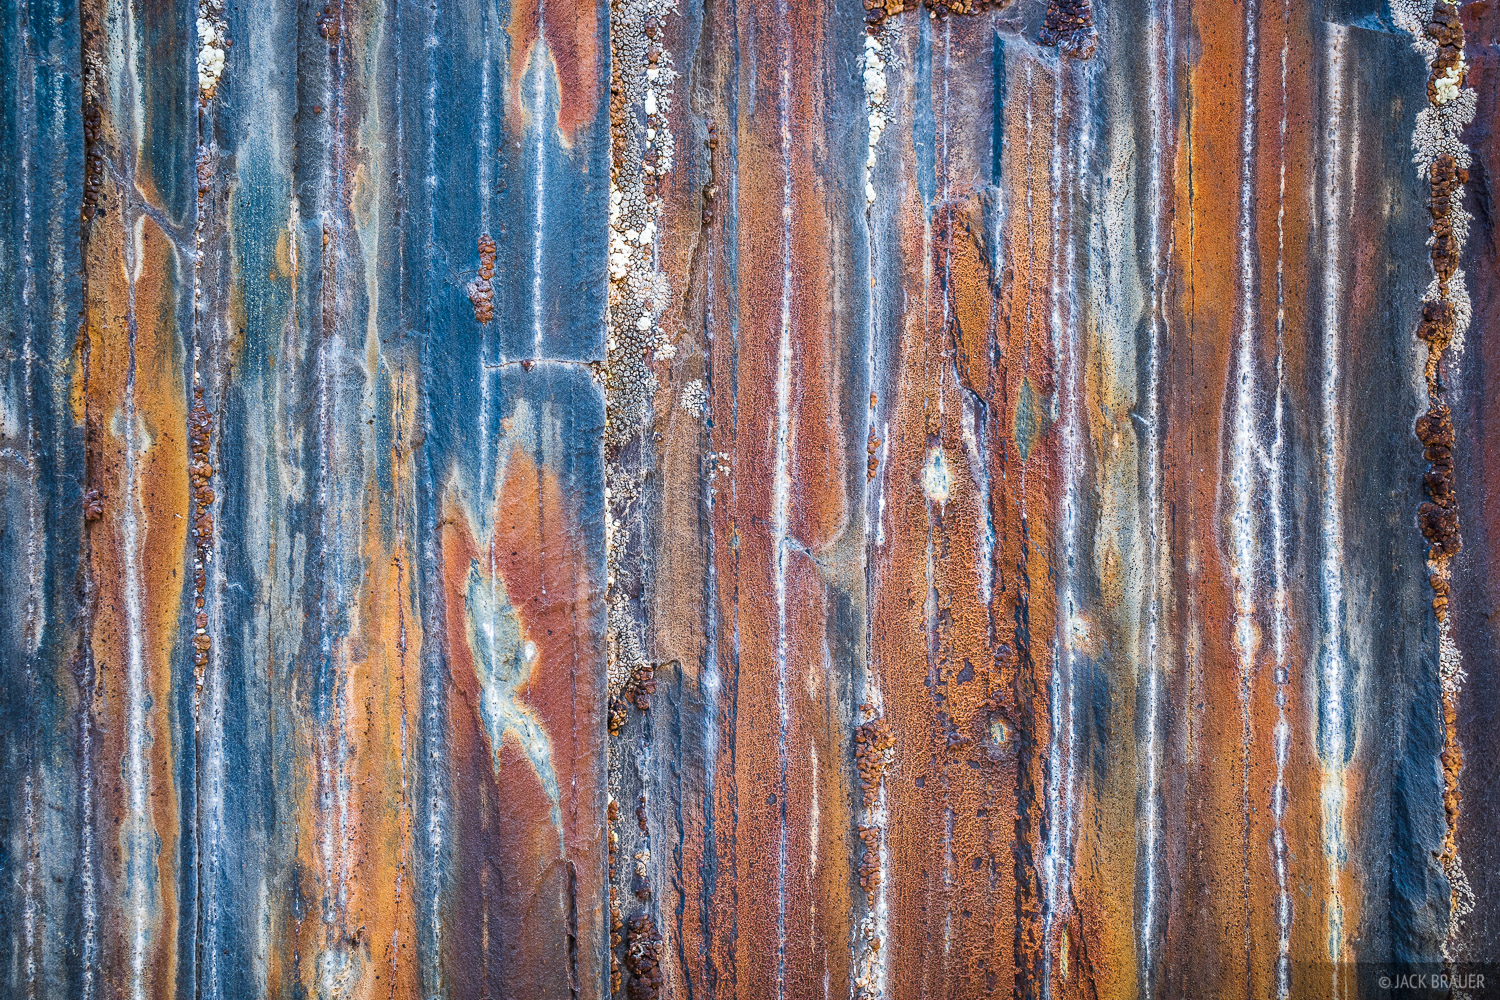 Colorado, San Juan Mountains, abstract, 2020